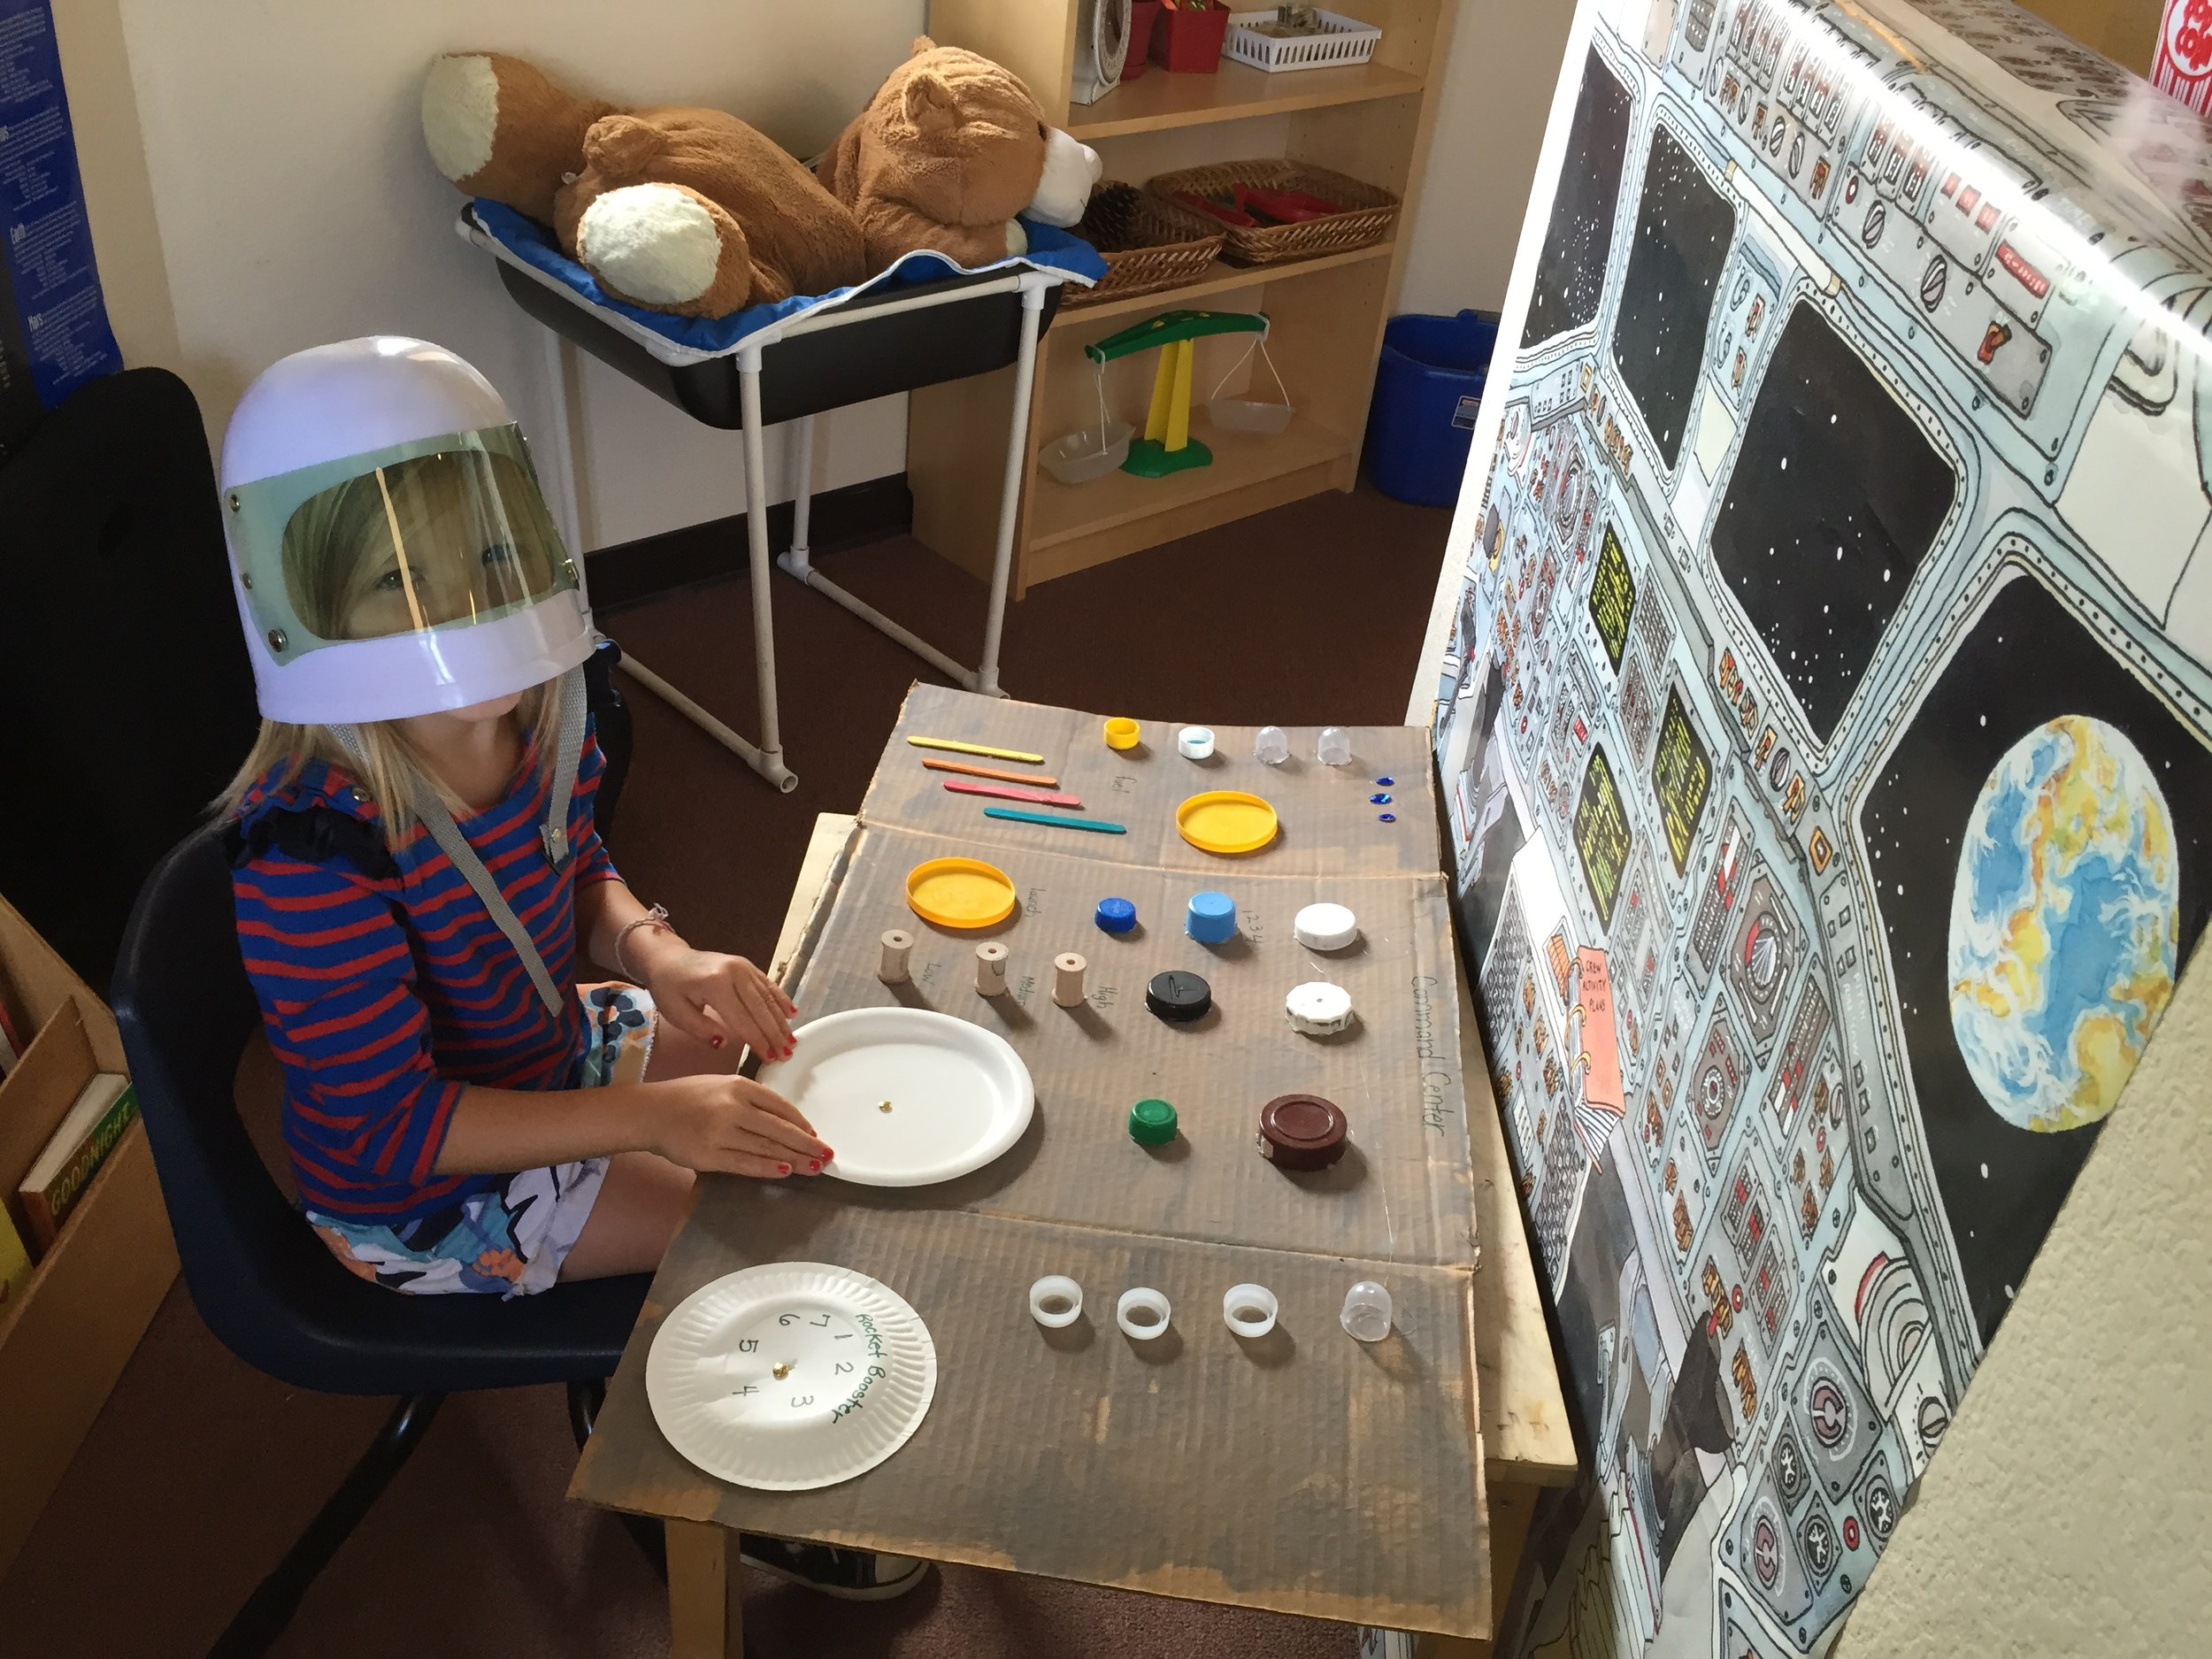 We had a blast this summer learning all about the sun, moon, stars, and planets! We pretended to get into our spaceship and took off to the moon! We even made it though a meteor shower!